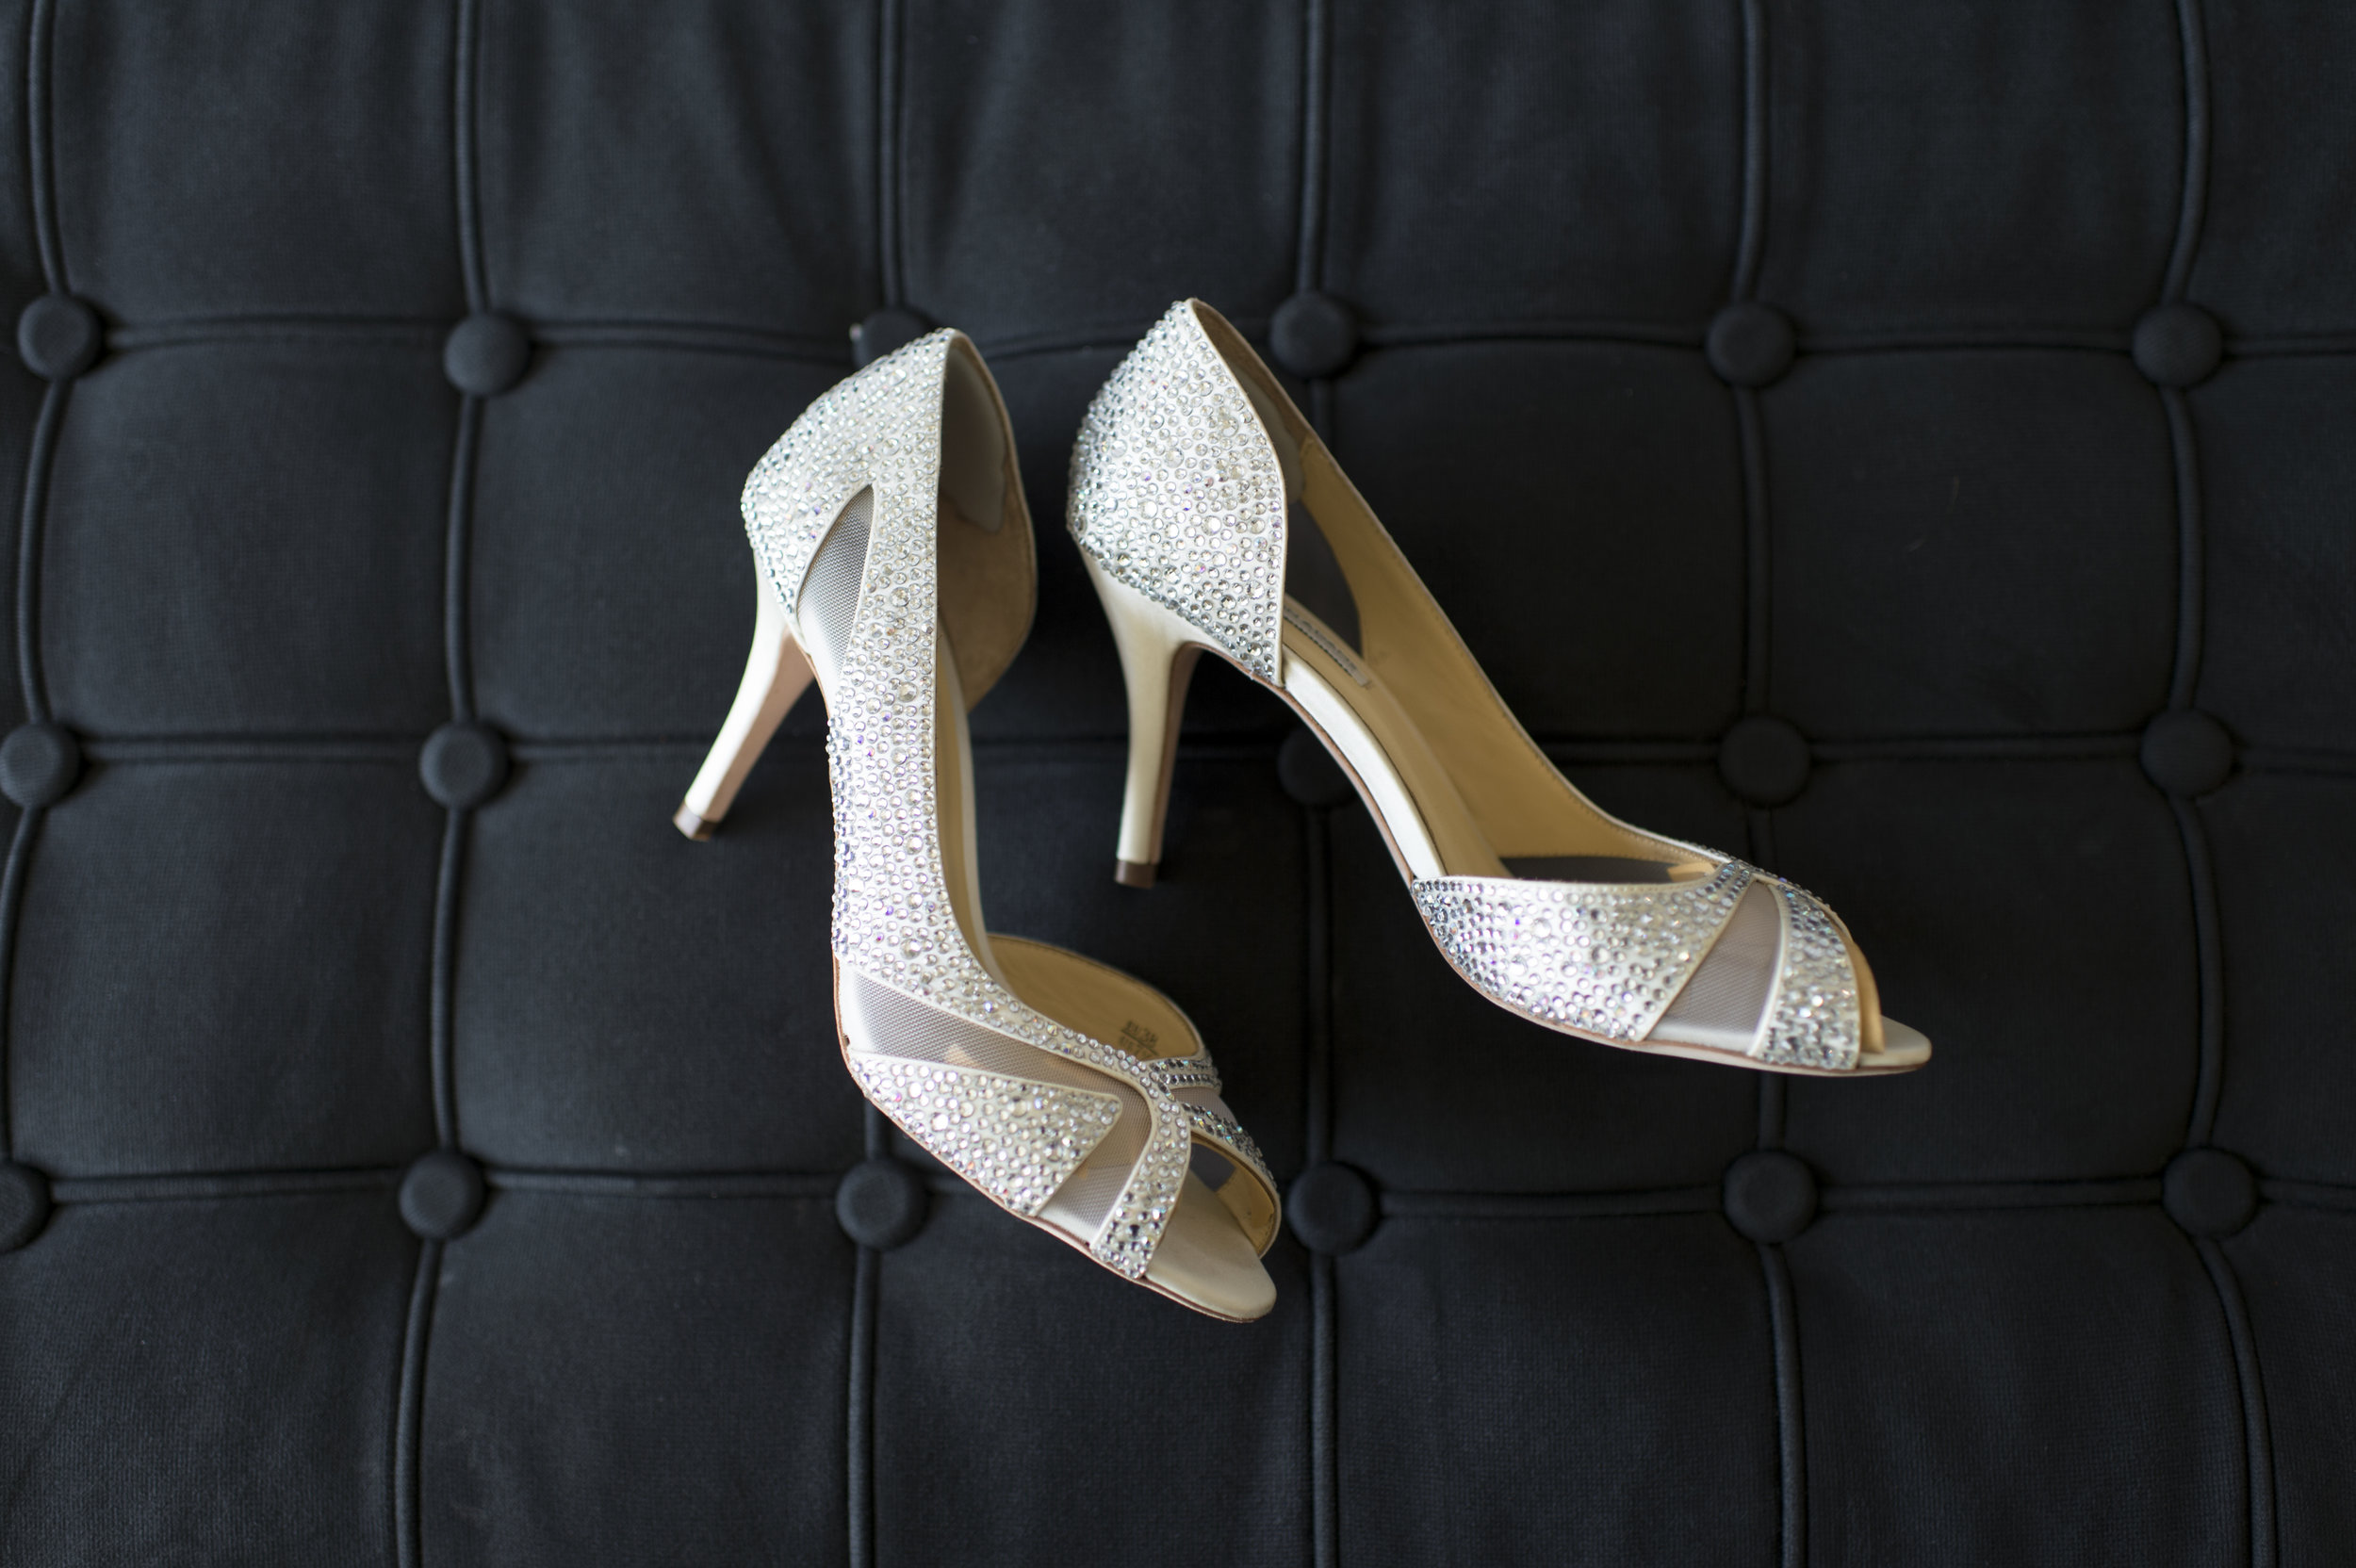 White Classic Bridal Heels - A Romantic Bel Air Bay Club Ocean-View Wedding - Southern California Wedding - Kevin Dinh Photography